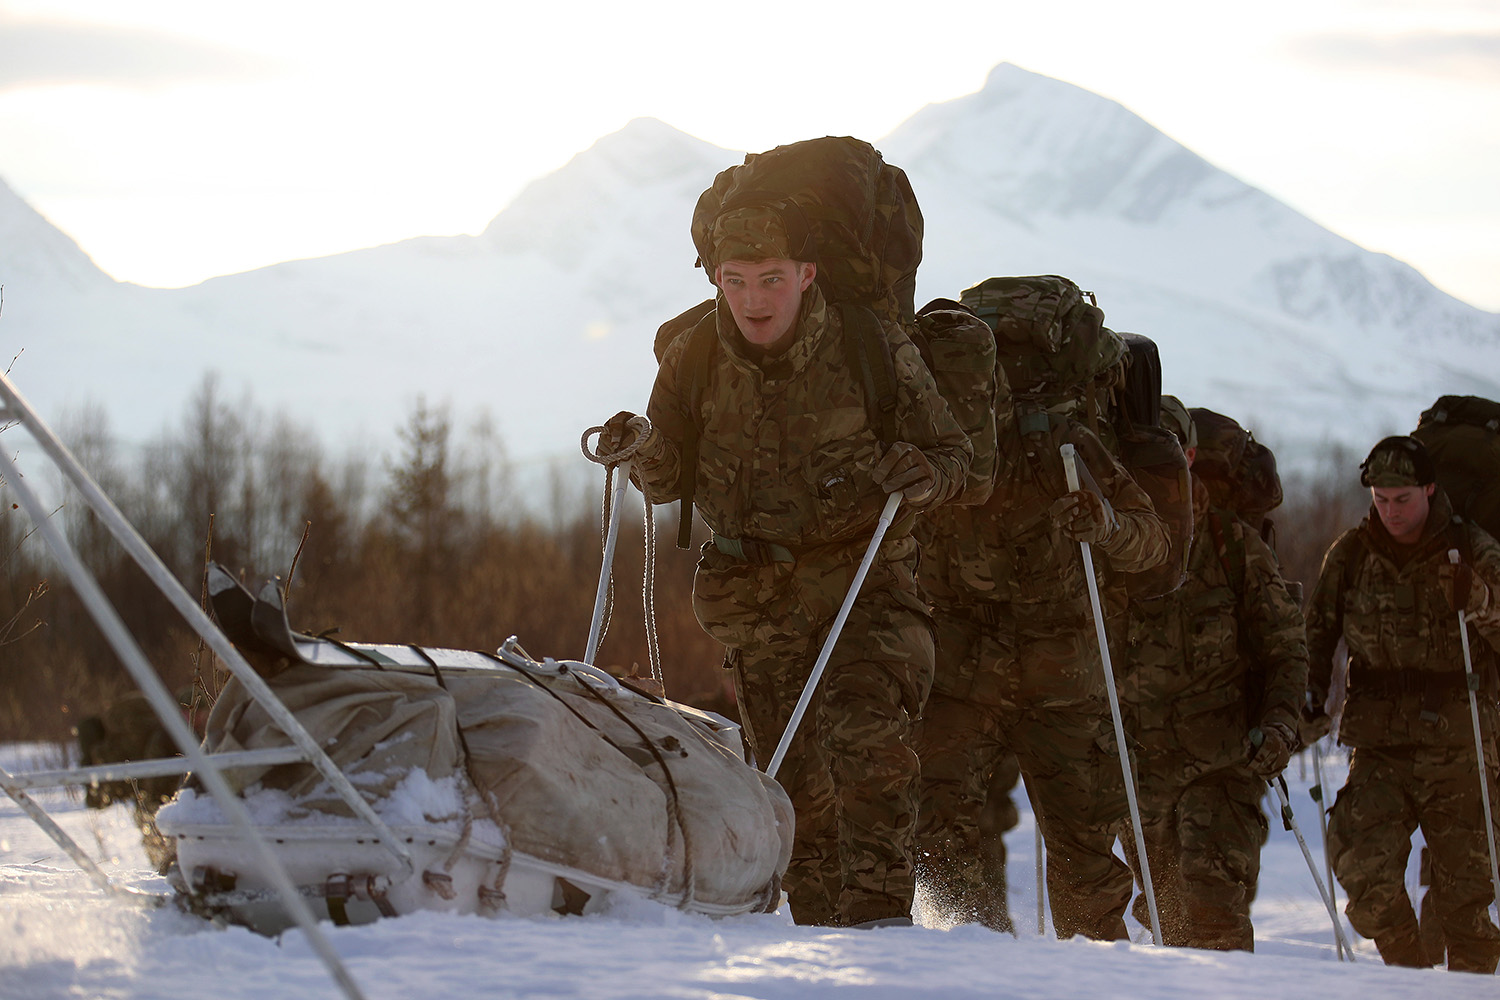 Marines relish Arctic role teaching Army and Americans cold